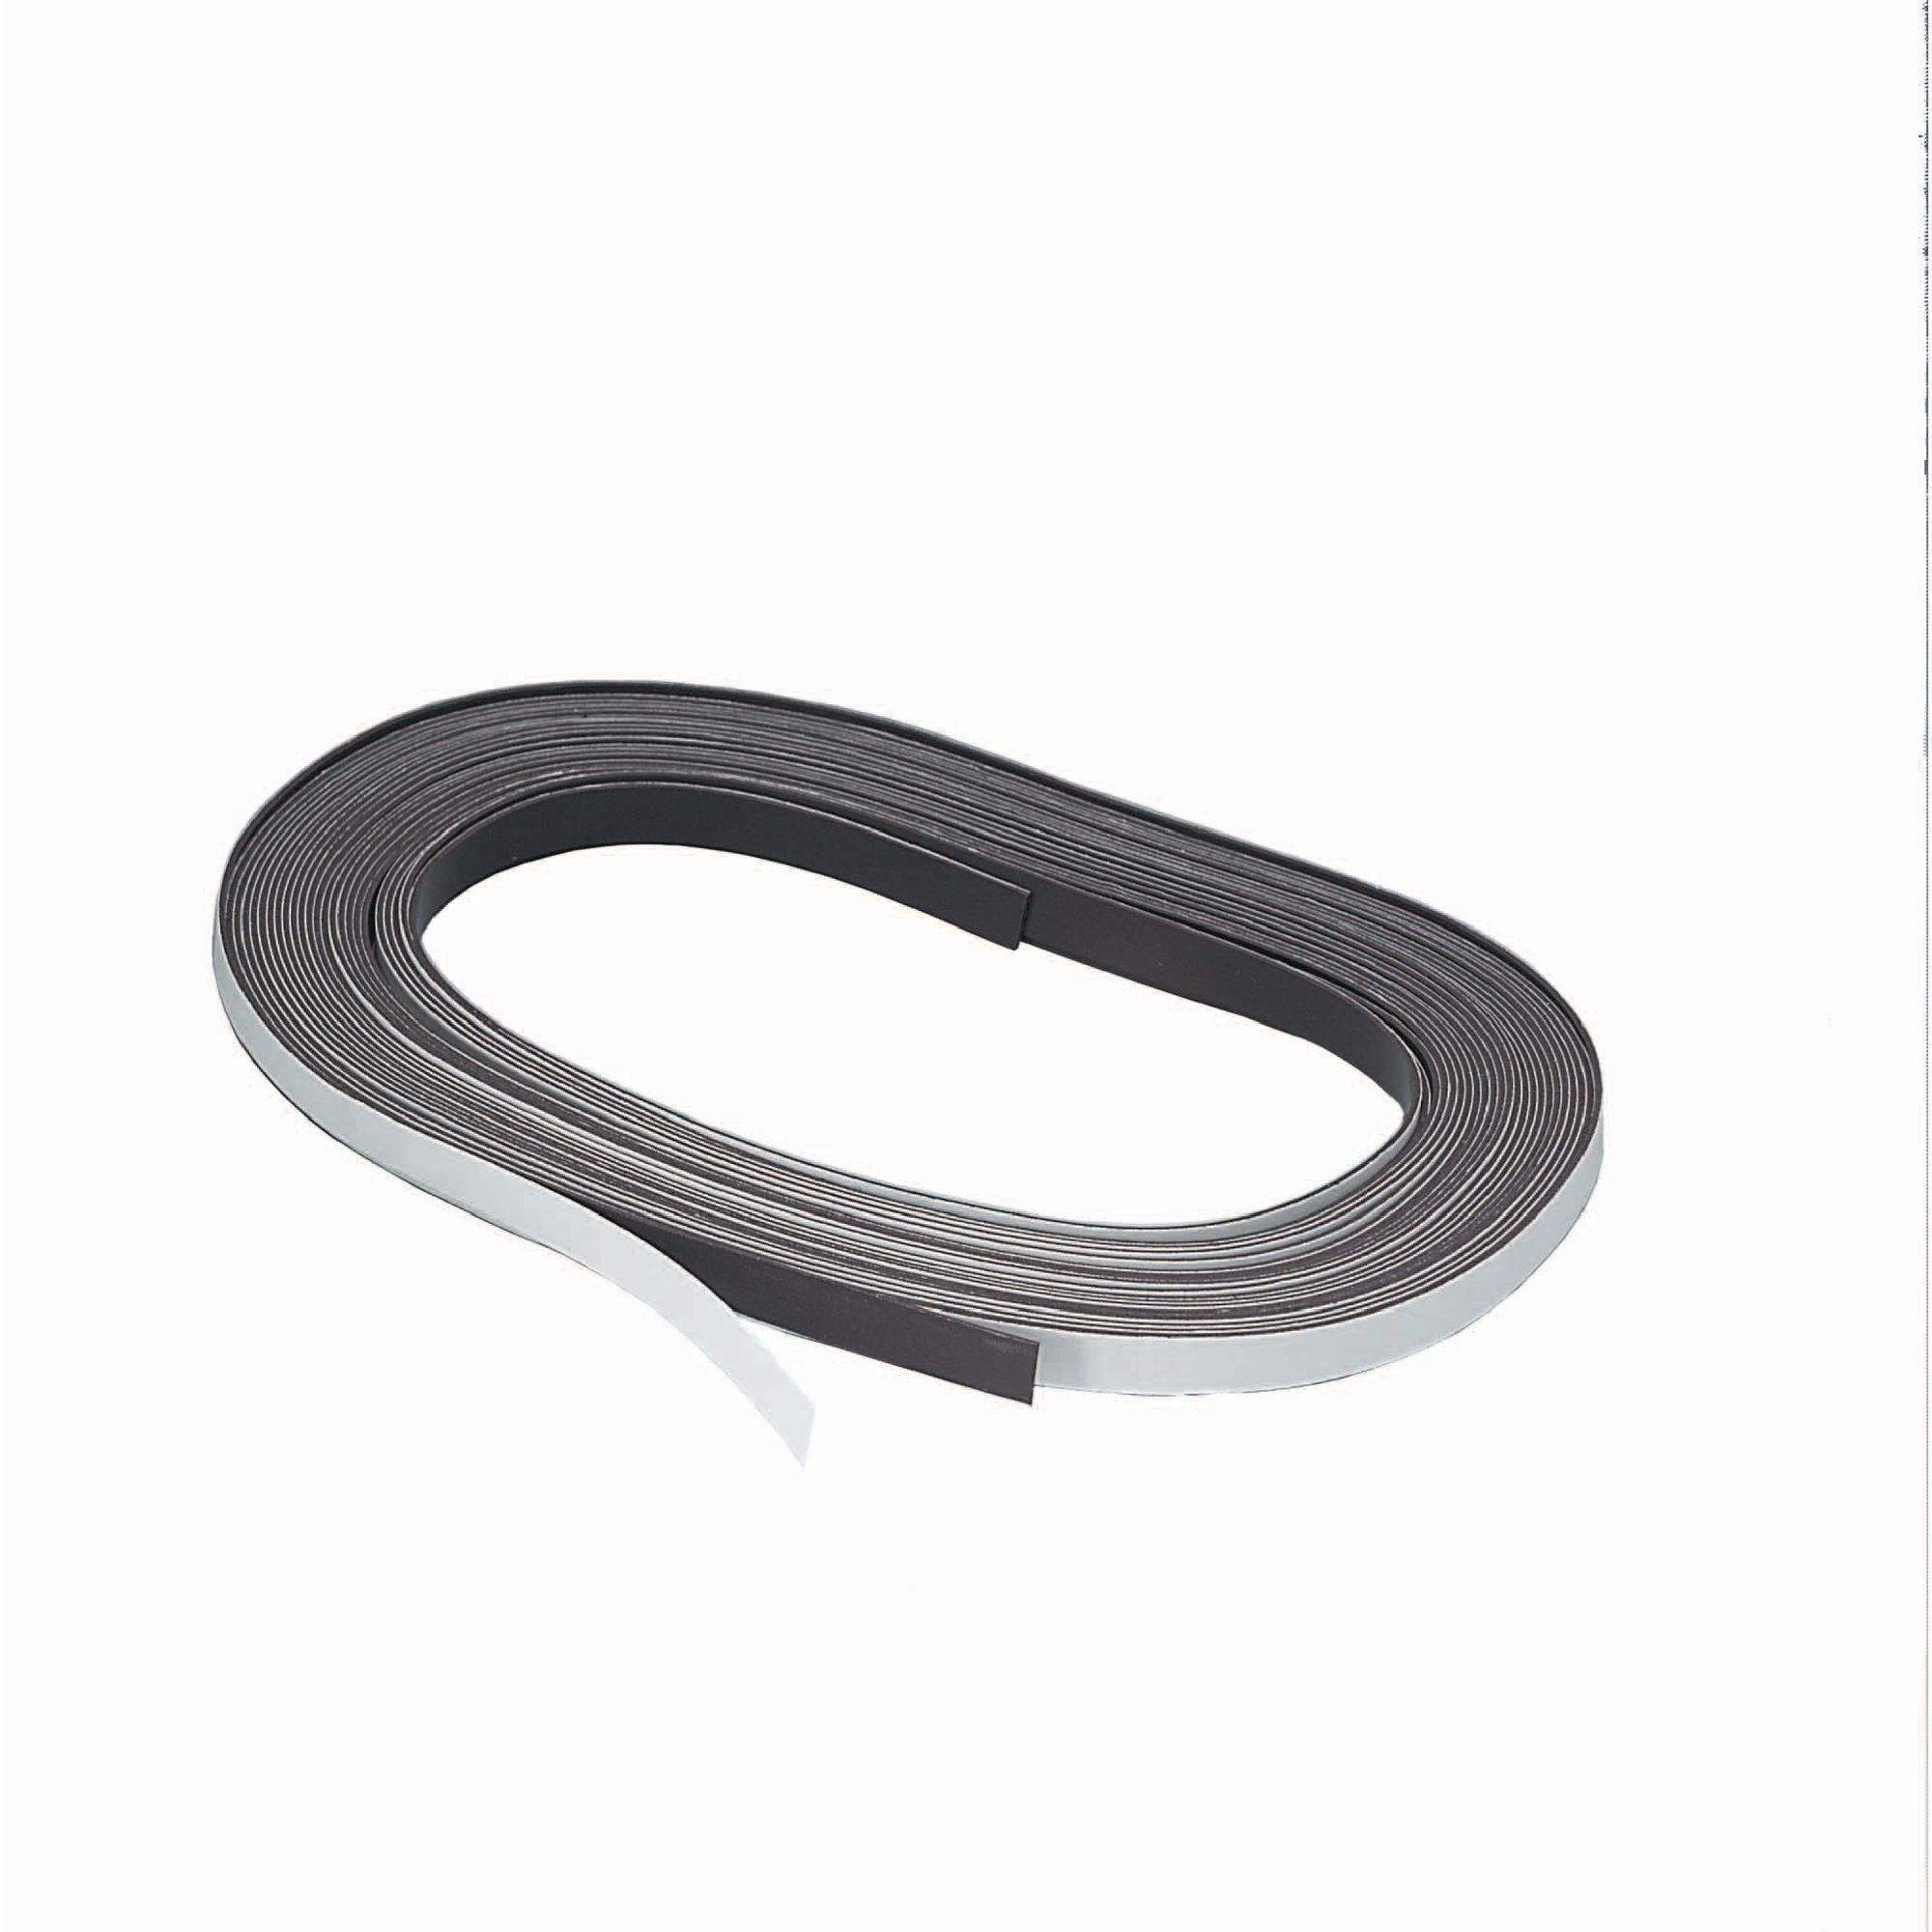 Magnetic Rubber Tape 8x0.8mm x10m